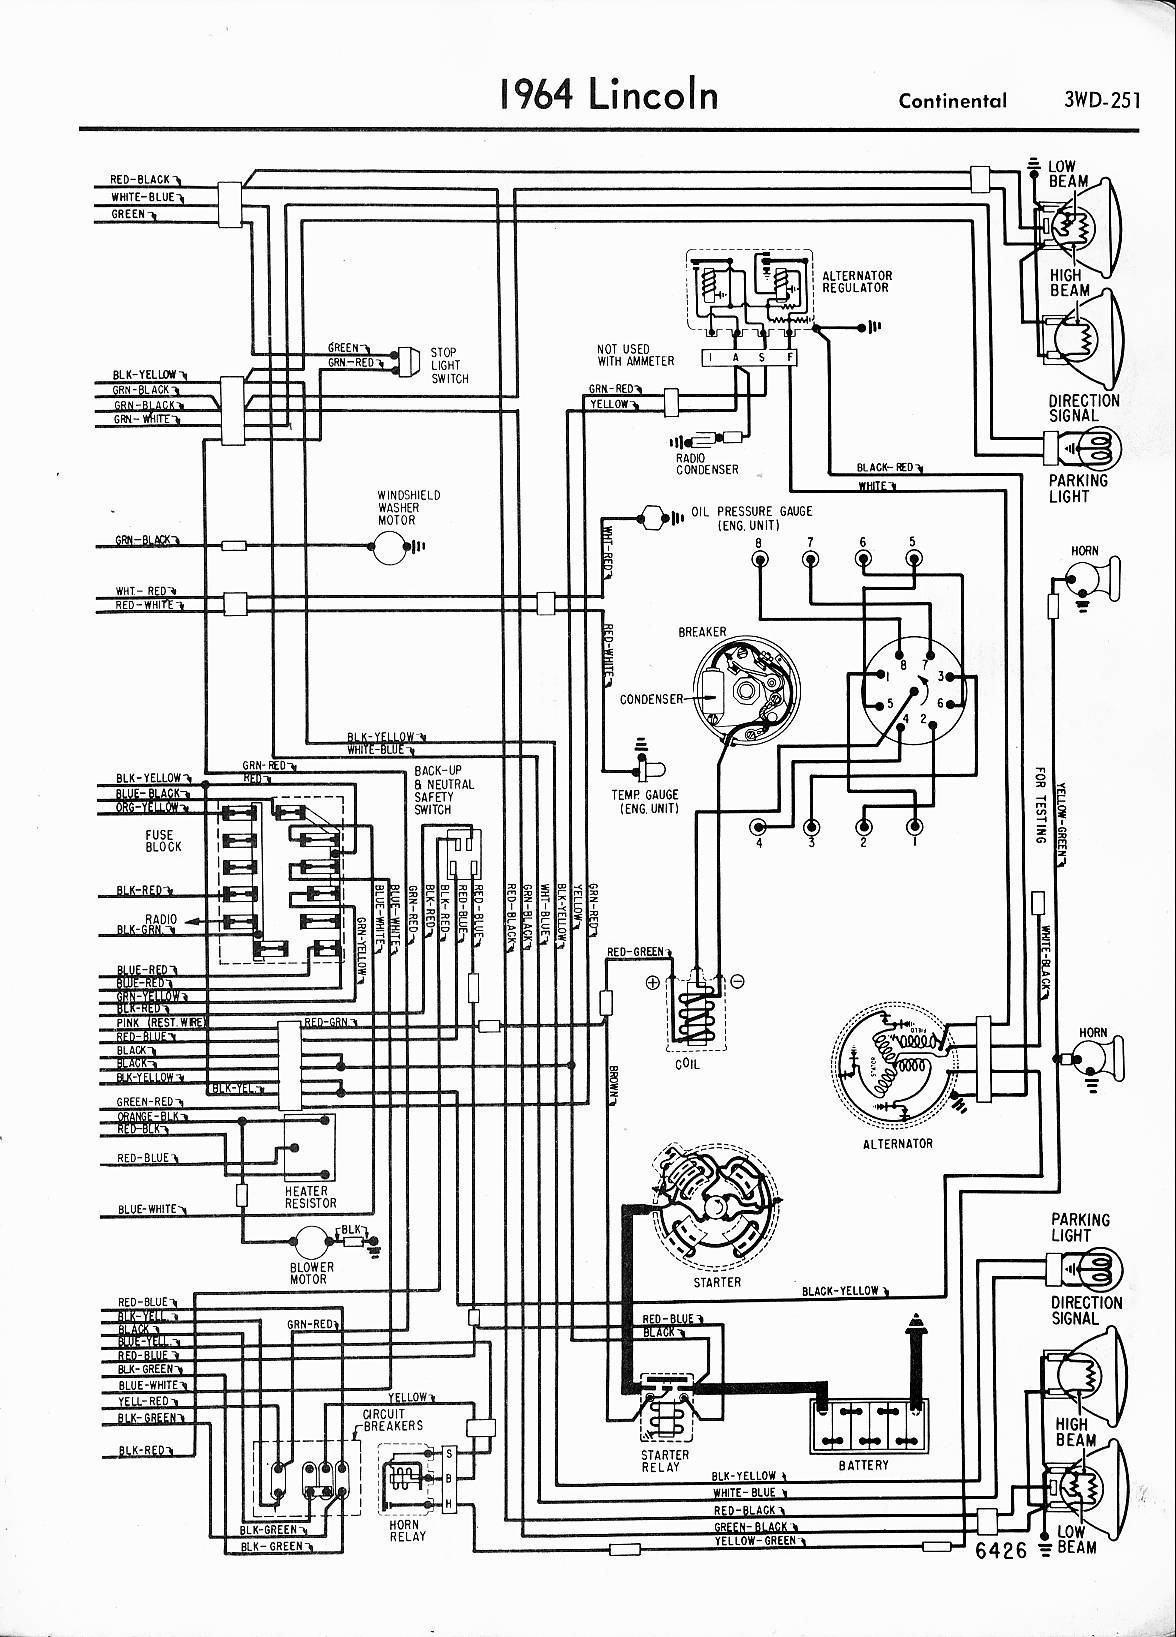 2000 Lincoln Ls V8 Engine Diagram Lincoln Continental Engine Diagram Worksheet and Wiring Diagram • Of 2000 Lincoln Ls V8 Engine Diagram